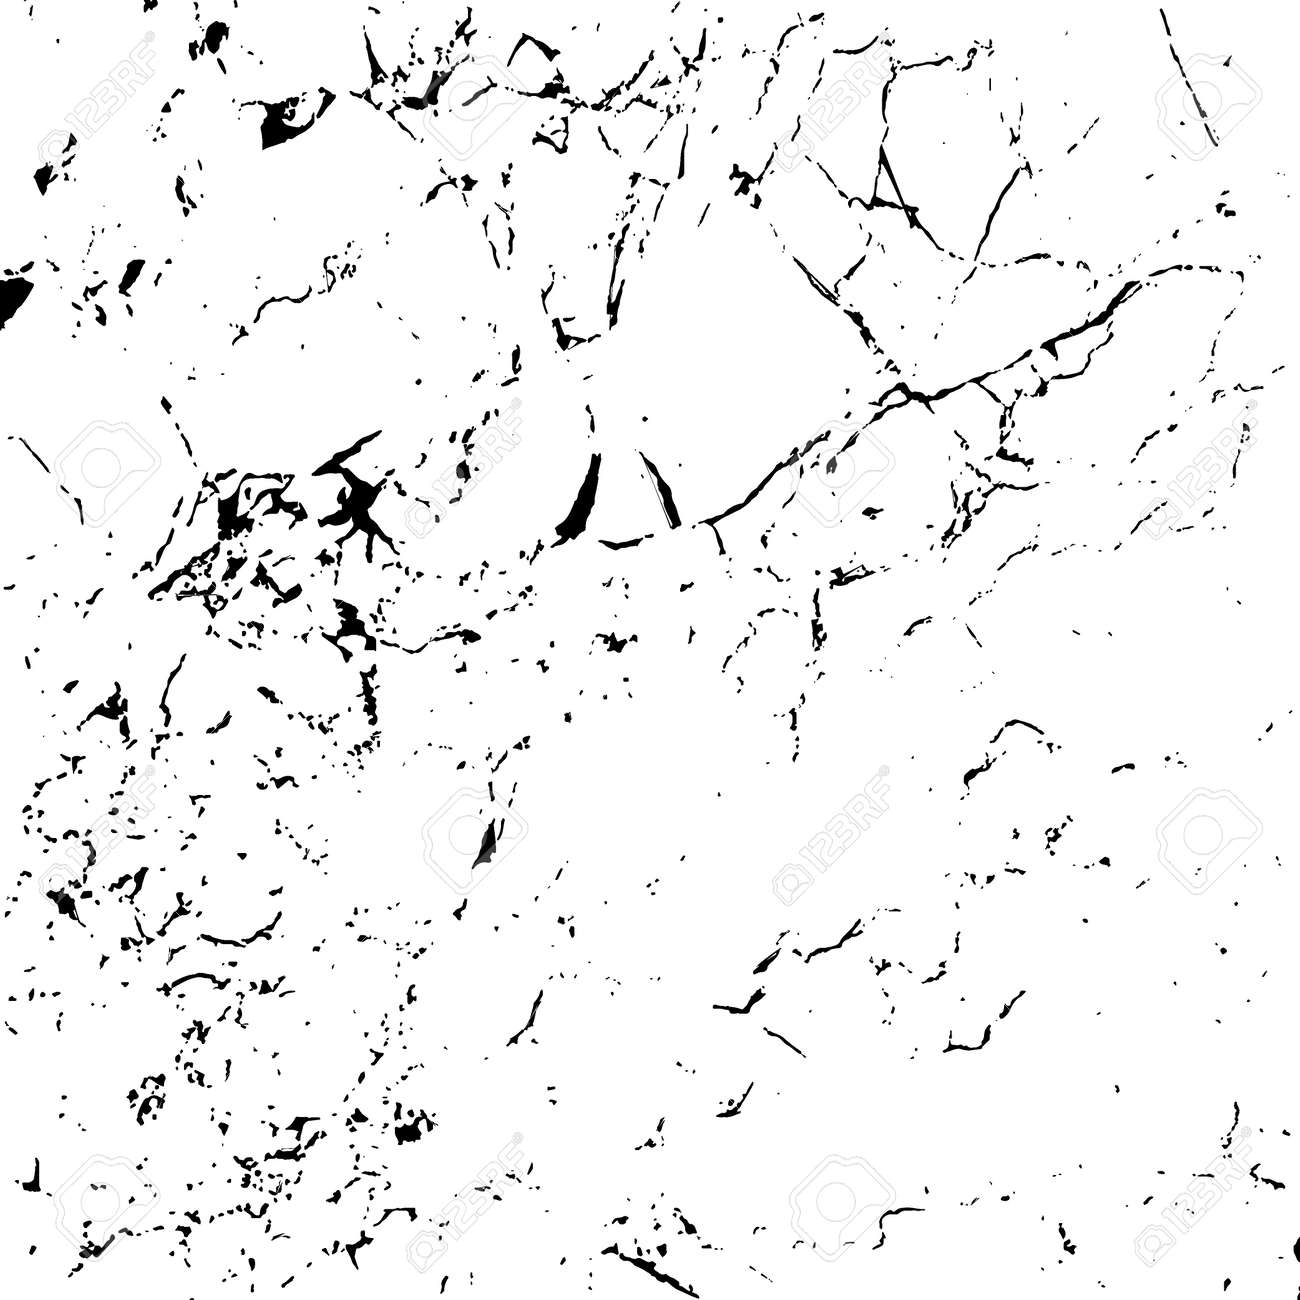 Grunge marble texture white and black. Sketch pattern to Create Distressed Effect. Overlay Distress grain monochrome design. Stylish modern background for different print products. Vector illustration - 52484537